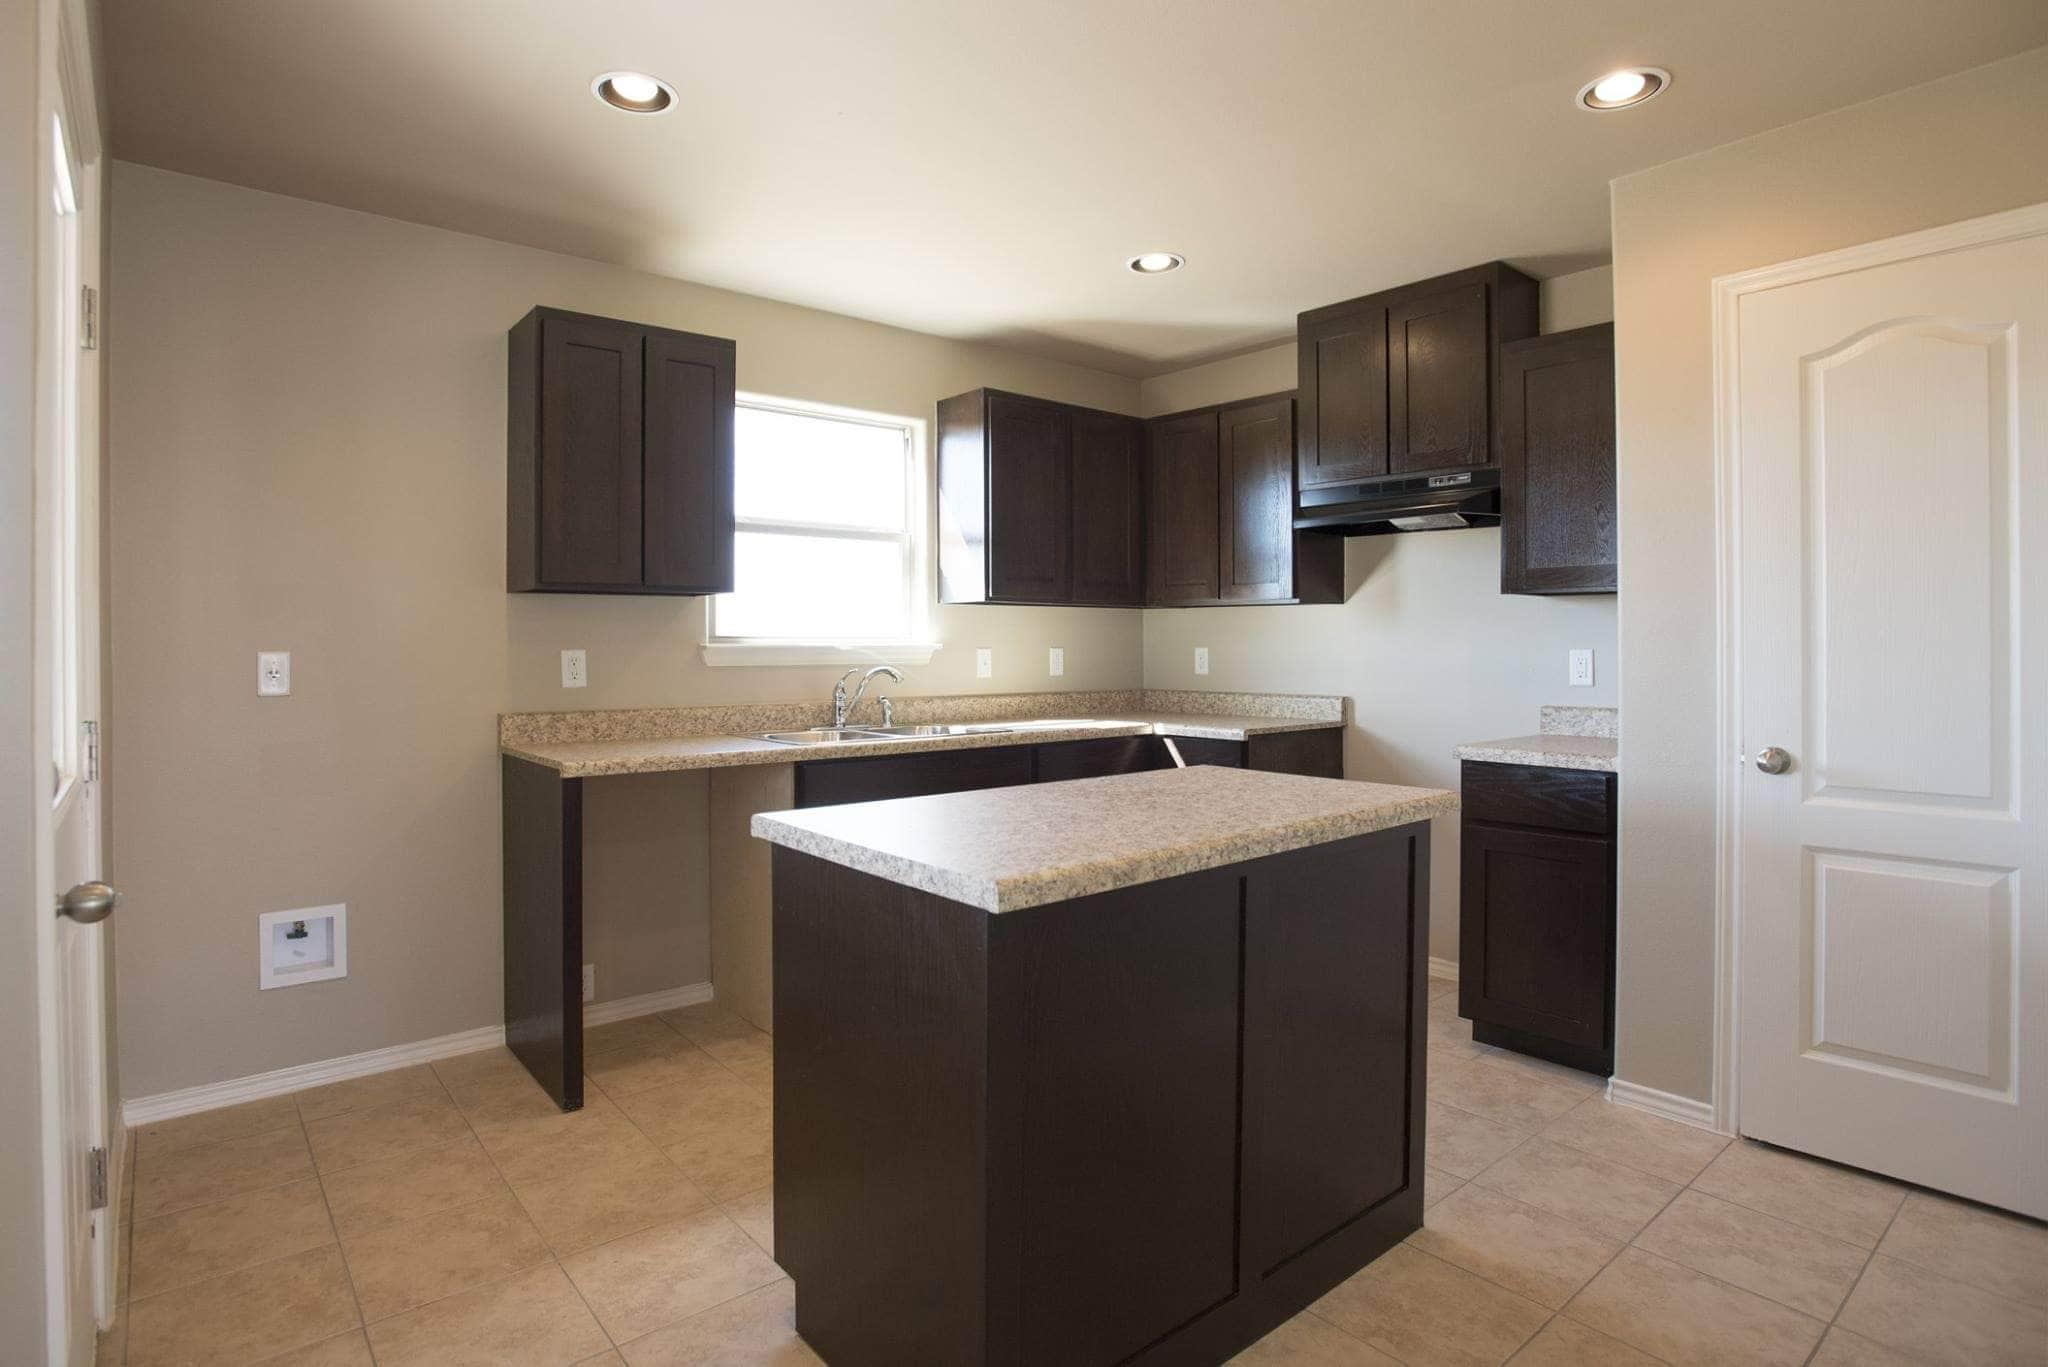 Kitchen featured in the San Vicente By WestWind Homes in Laredo, TX